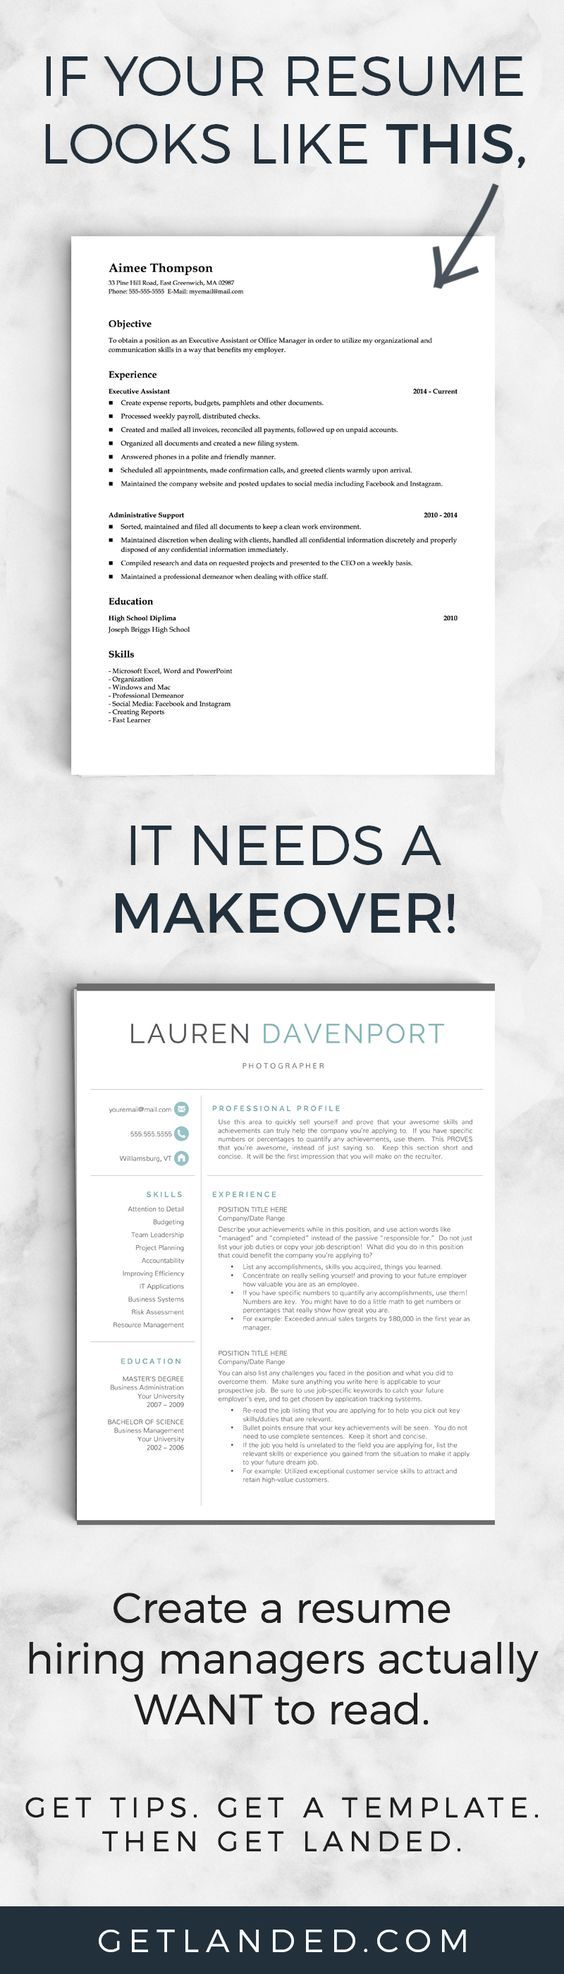 80% of candidates desperately need a resume makeover! Get a resume ...